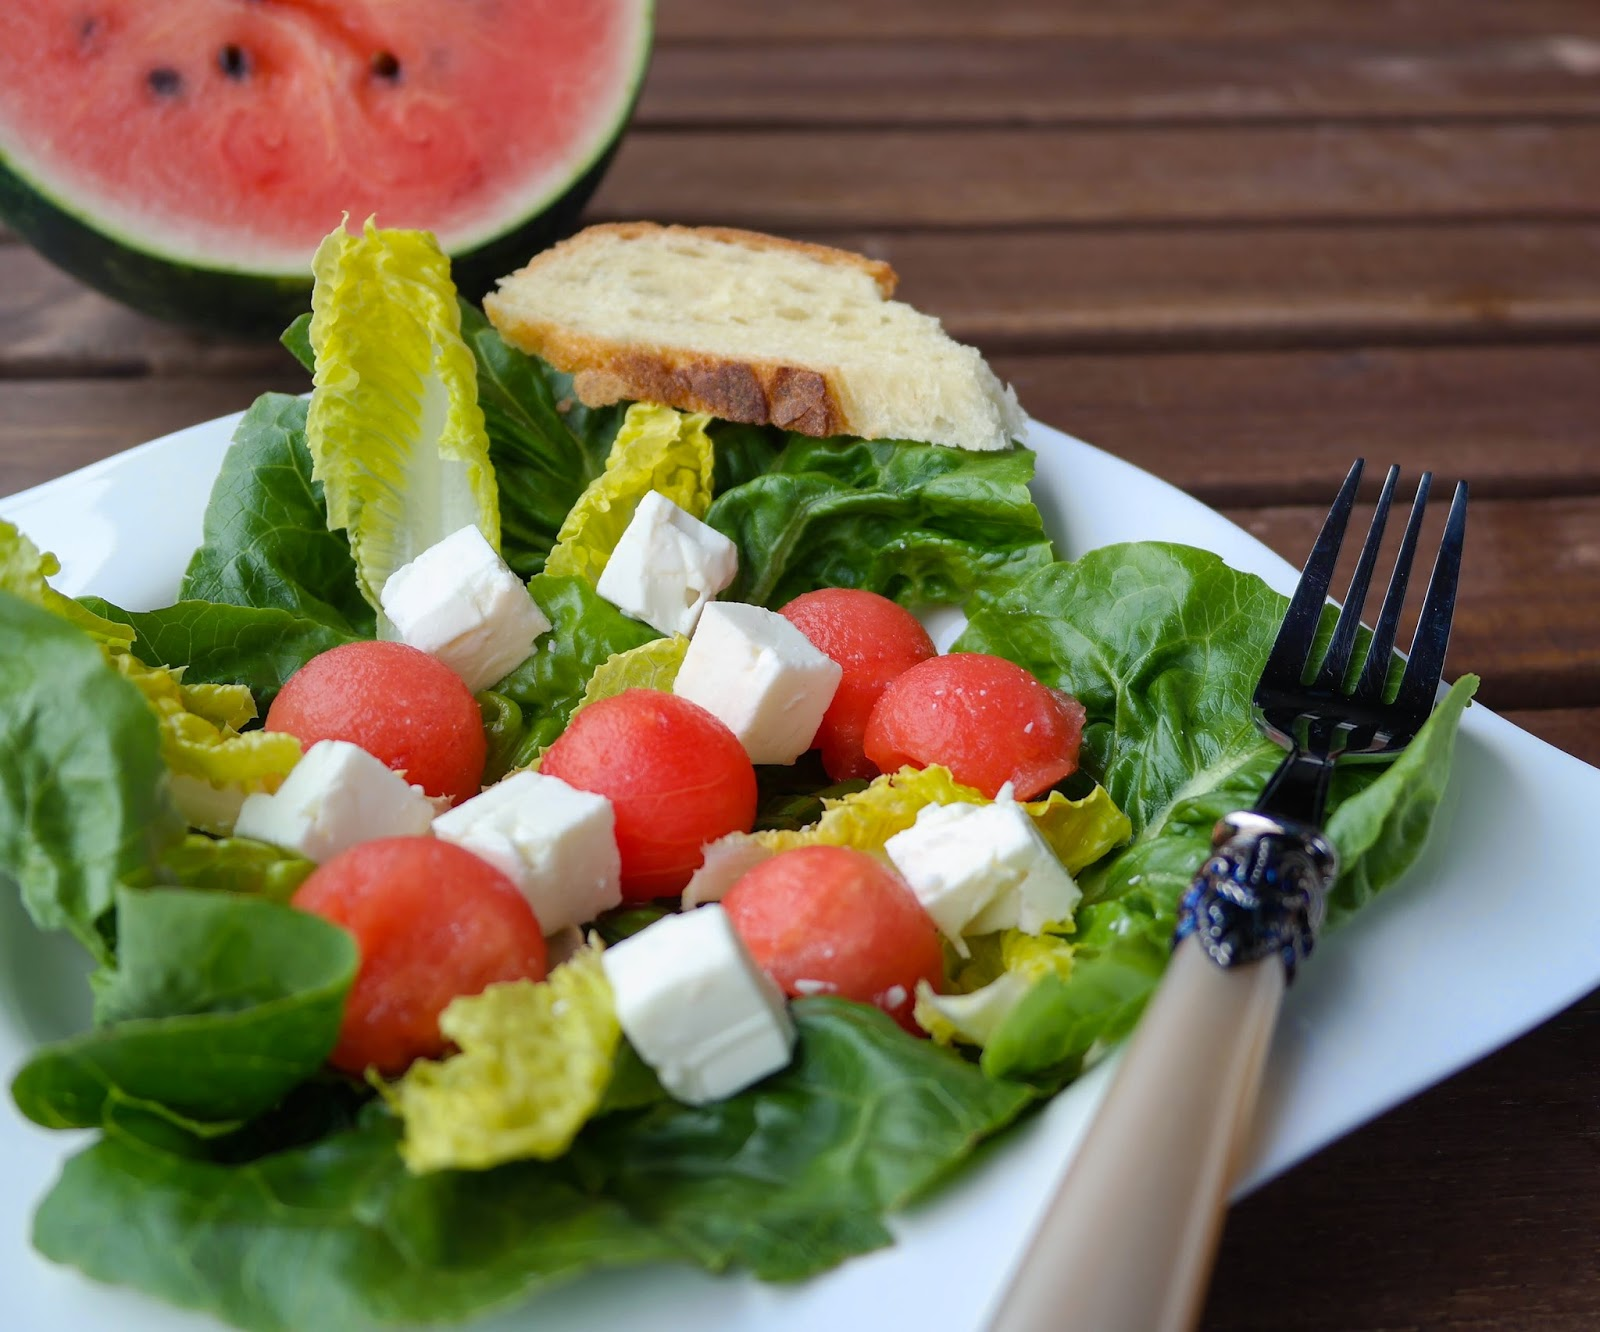 sia s soulfood foodblog erfrischender sommersalat mit wassermelone und feta. Black Bedroom Furniture Sets. Home Design Ideas